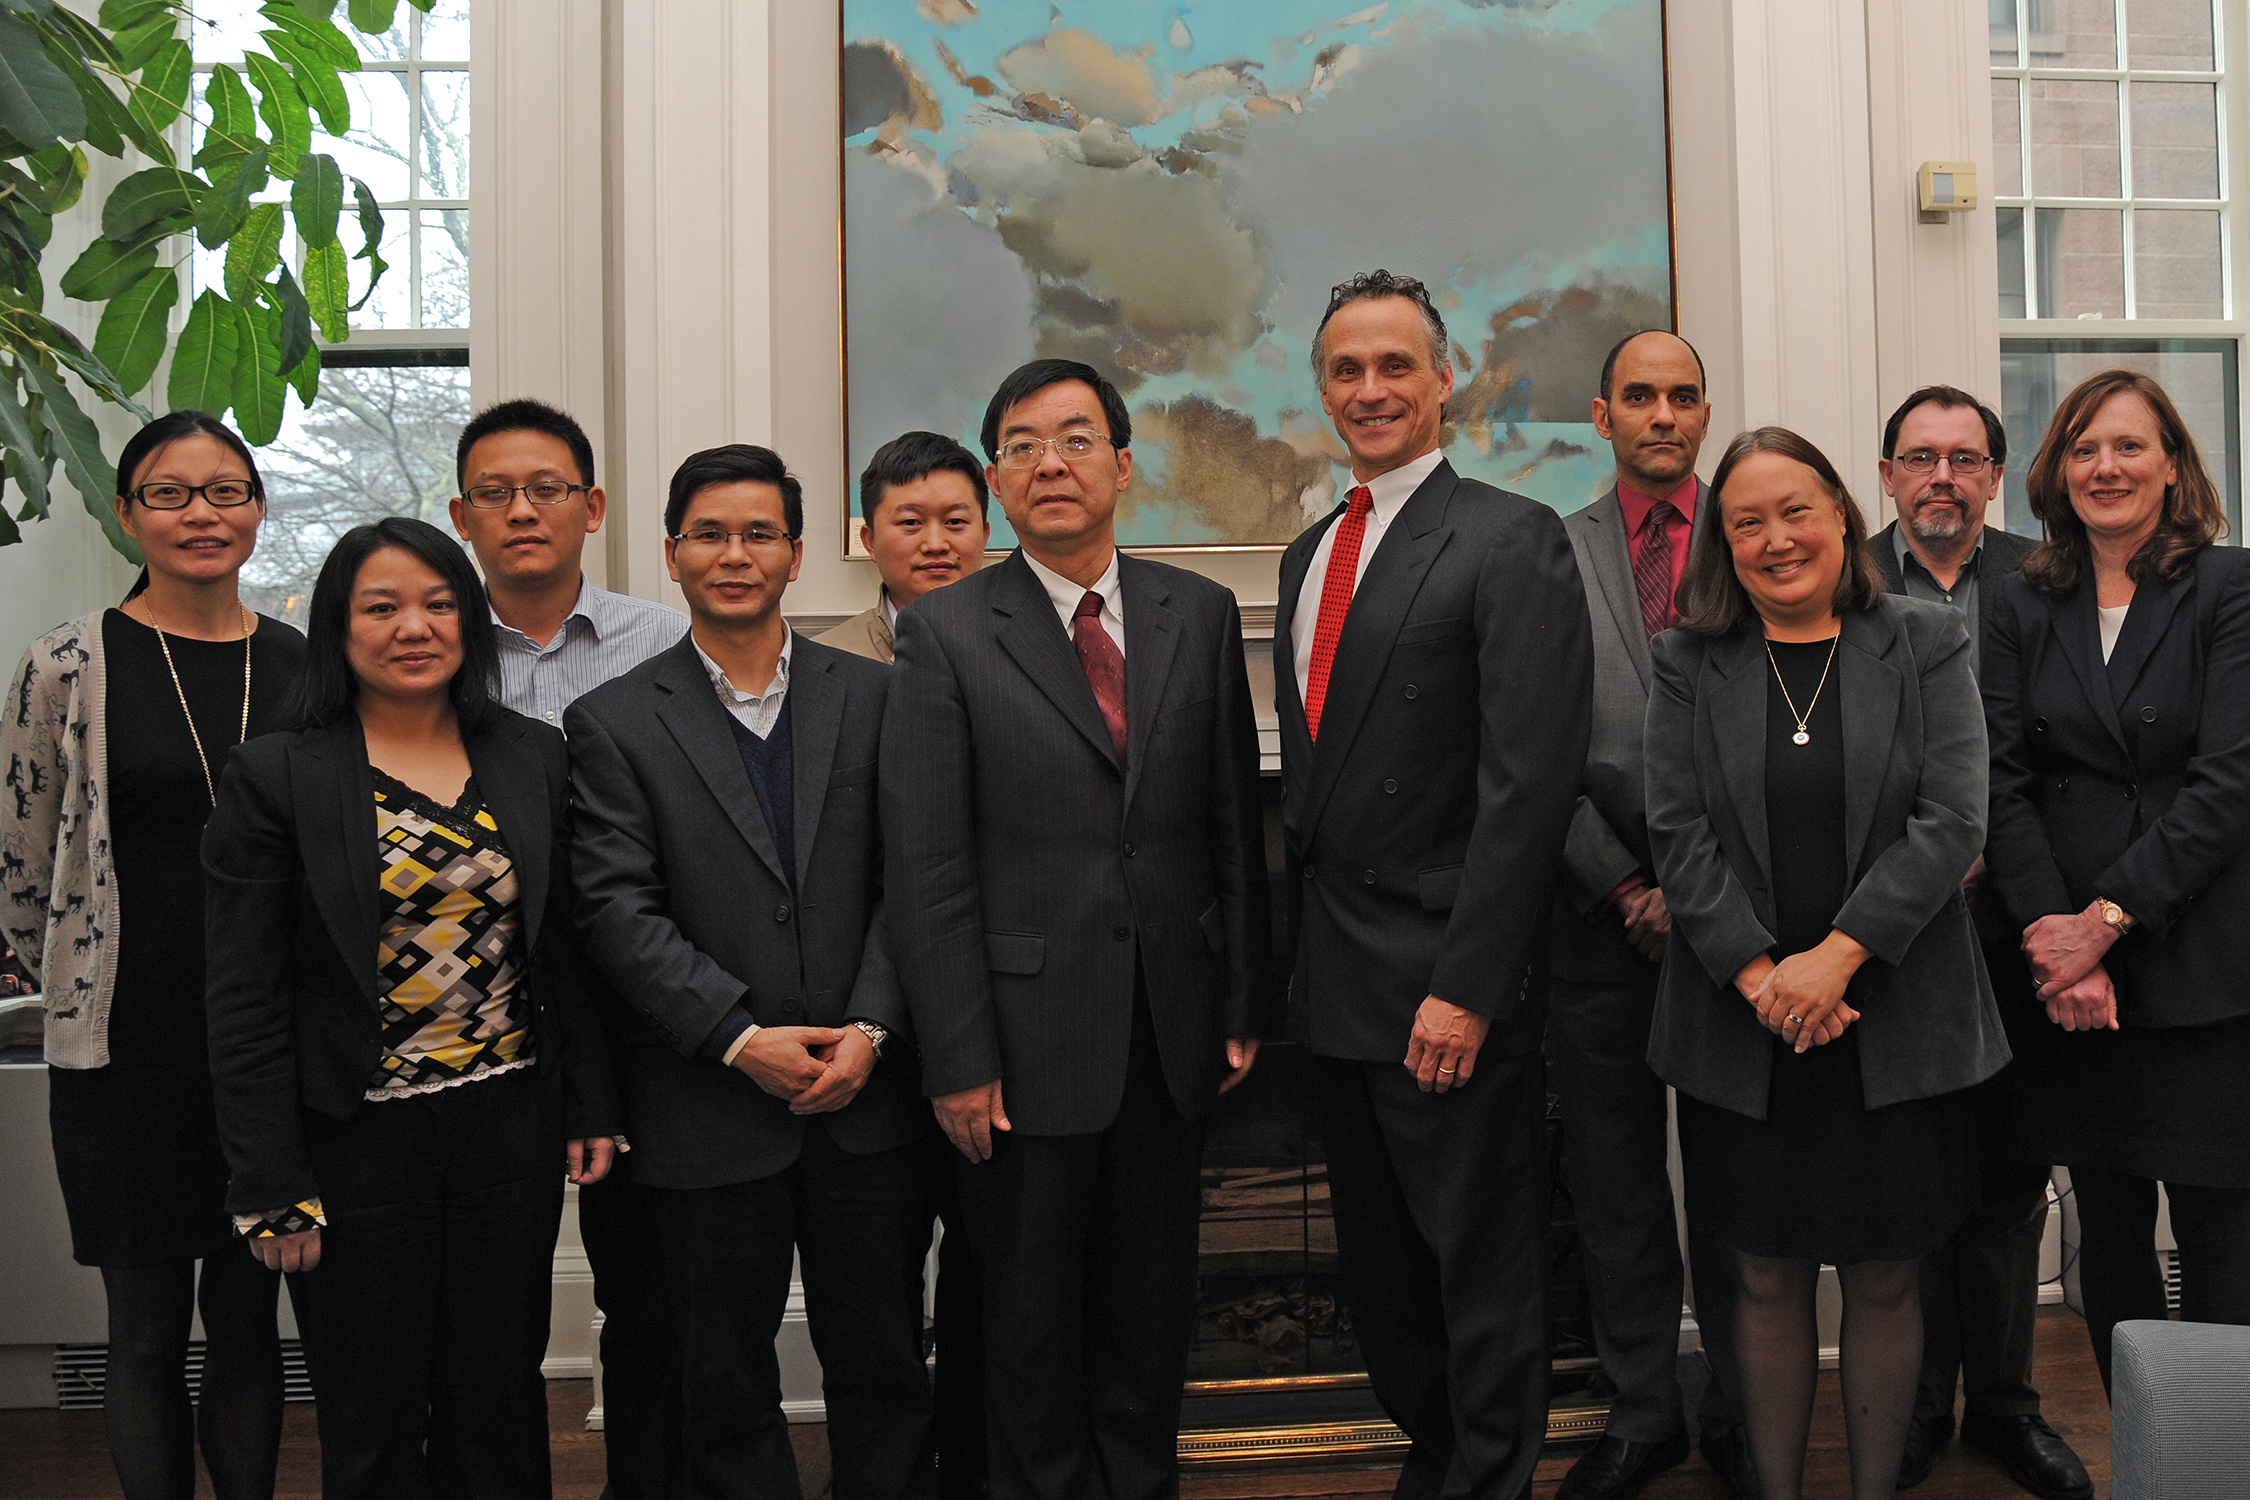 Scholars from Wesleyan and the Social Sciences in China Press gathered Dec. 10 to sign a memorandum of understanding. Pictured are, front row from left, Daimei Feng, Changbao Wei, Limin Wang, Michael Roth, Joyce Jacobsen, and Jennifer Tucker. Back row, from left, Guofei Chu, Bing Jiao, Qun Zhou, Gary Shaw, and Peter Rutland.